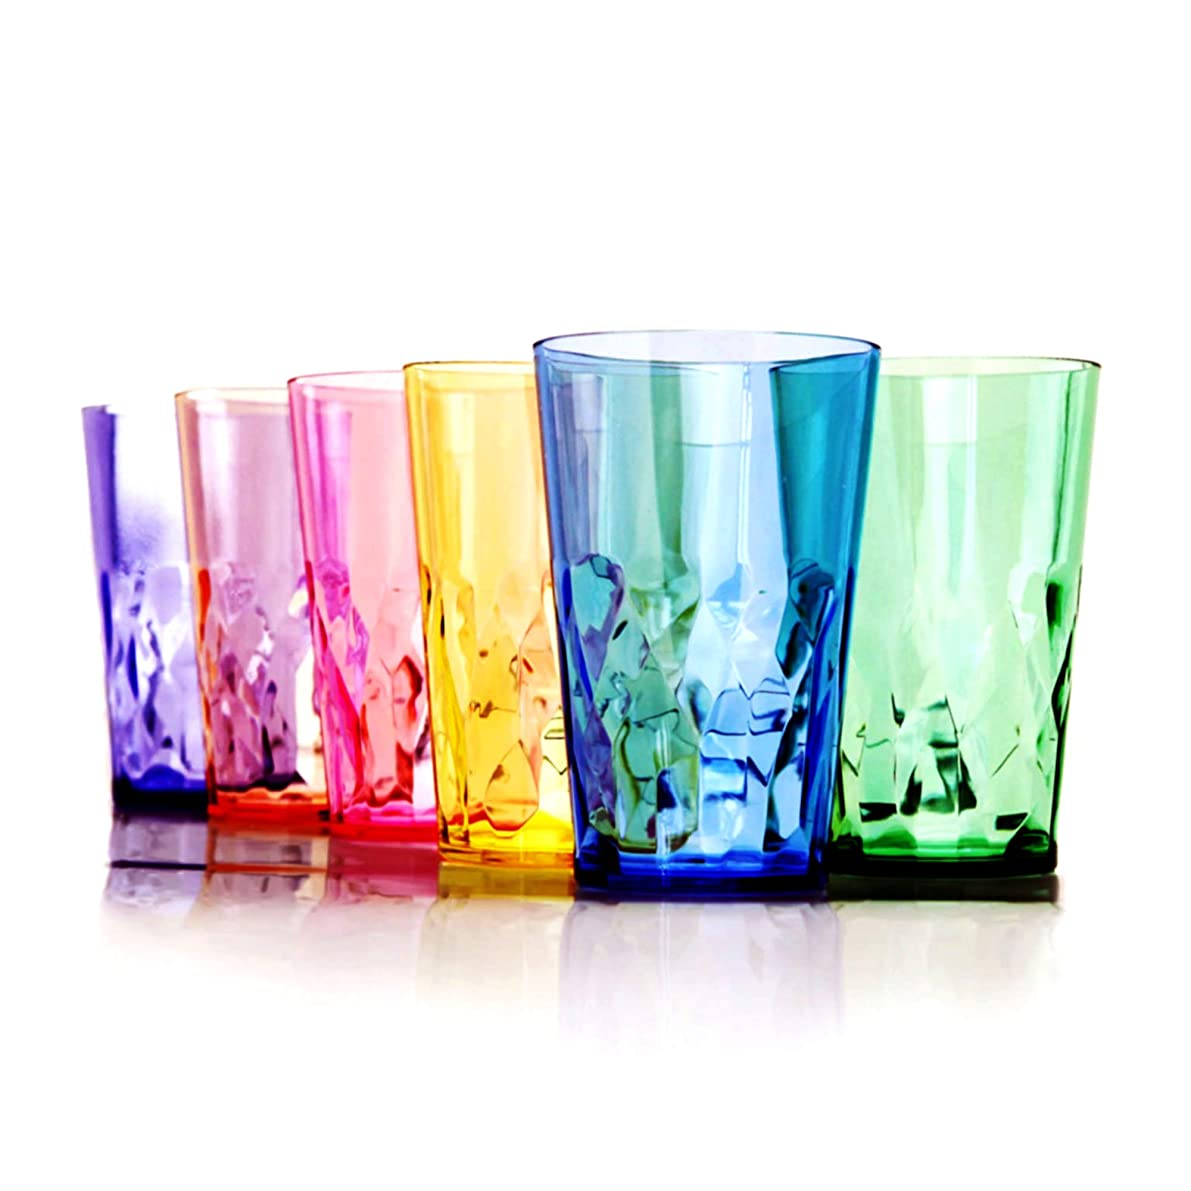 19 oz Unbreakable Premium Drinking Glasses - Set of 6 - Tritan Plastic Cups - BPA Free - 100% Made in Japan (Assorted Colors)